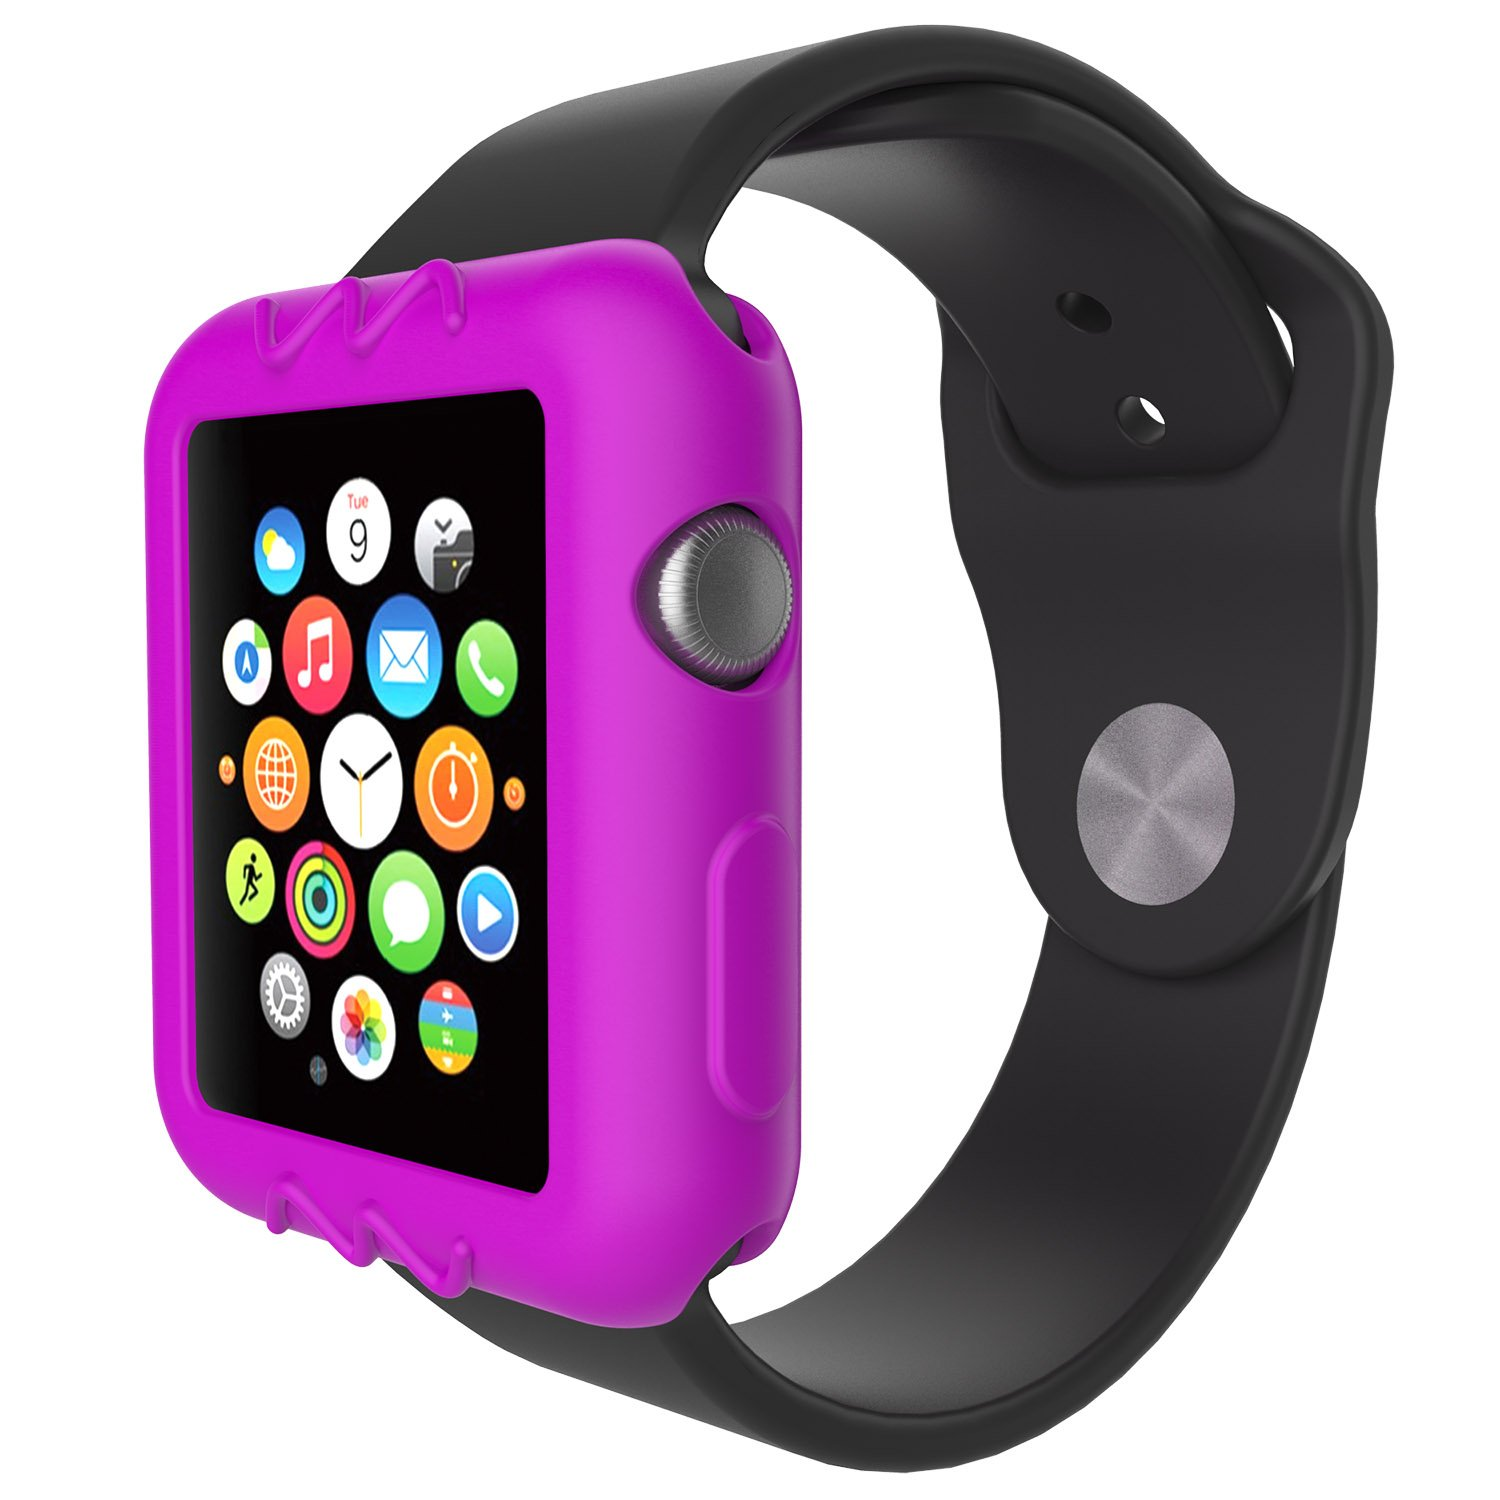 For Apple Watch 42mm Protective Case, 10x Replacement Silicone Soft Case Cover for Apple Watch Series 3 2 1 Smartwatch, 10pcs by E ECSEM (Image #6)